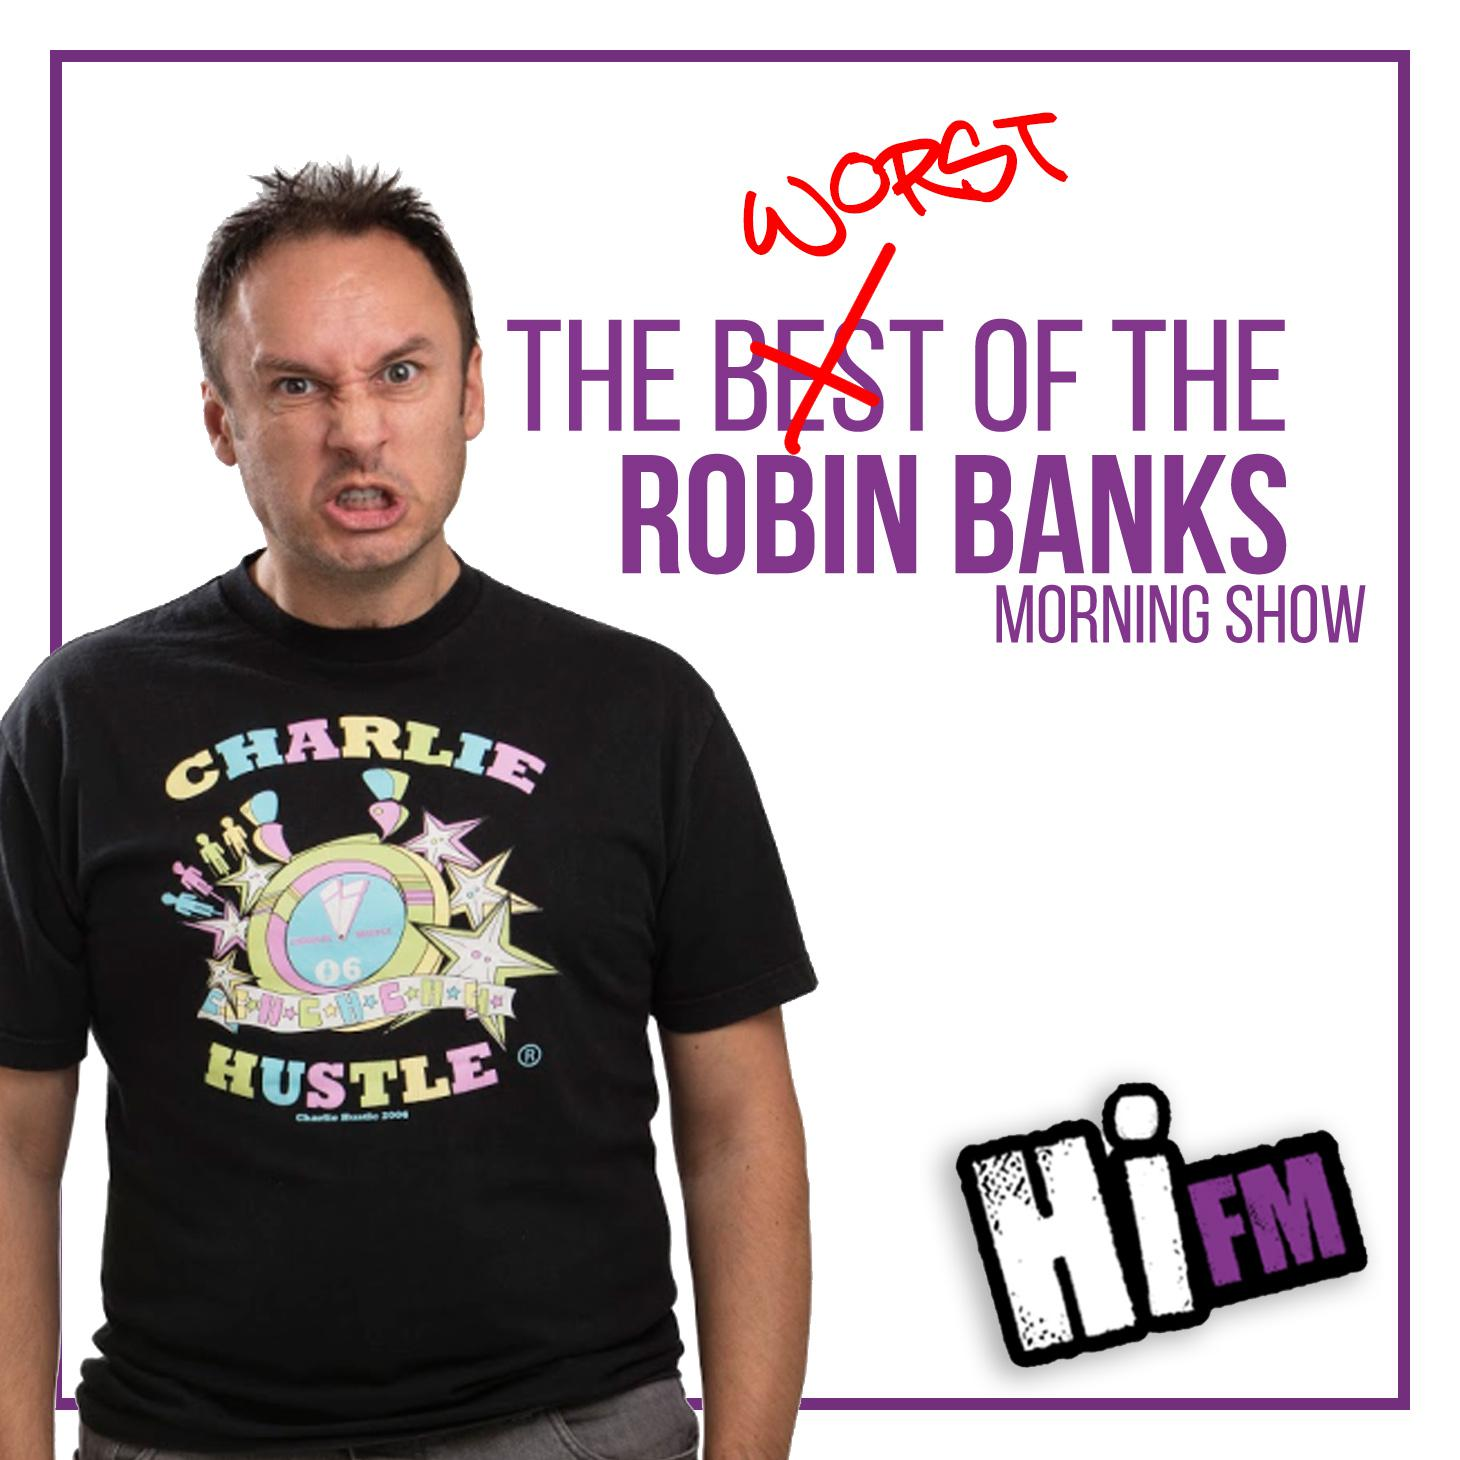 Robin Banks & The Worst of the Hi FM Morning Show